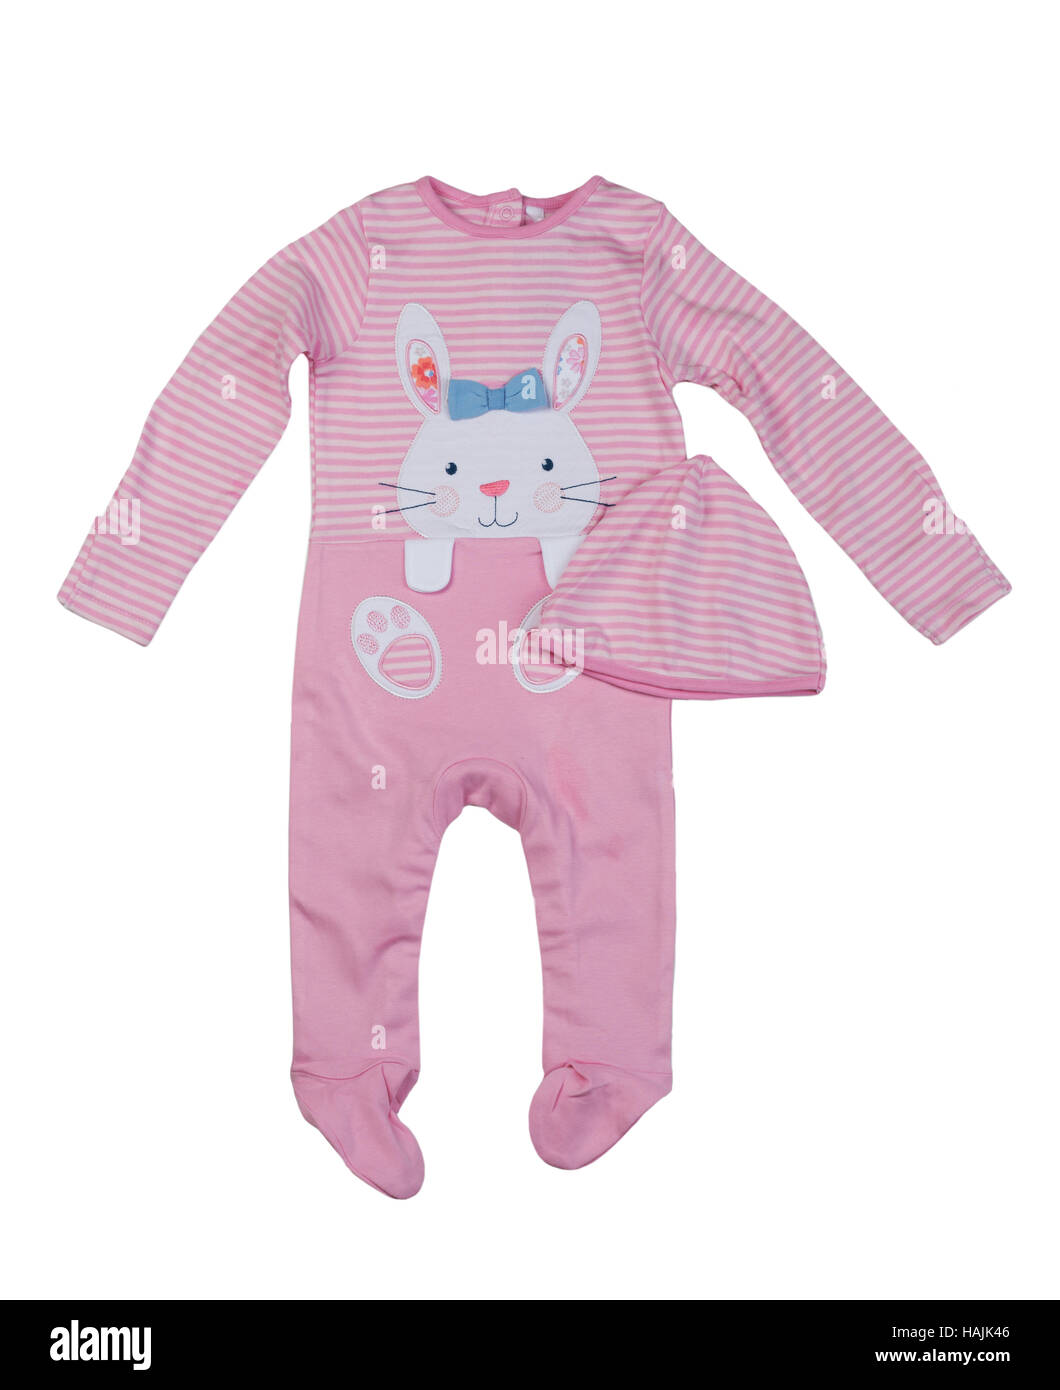 Pink rompers with rabbit pattern. Isolate on white. - Stock Image